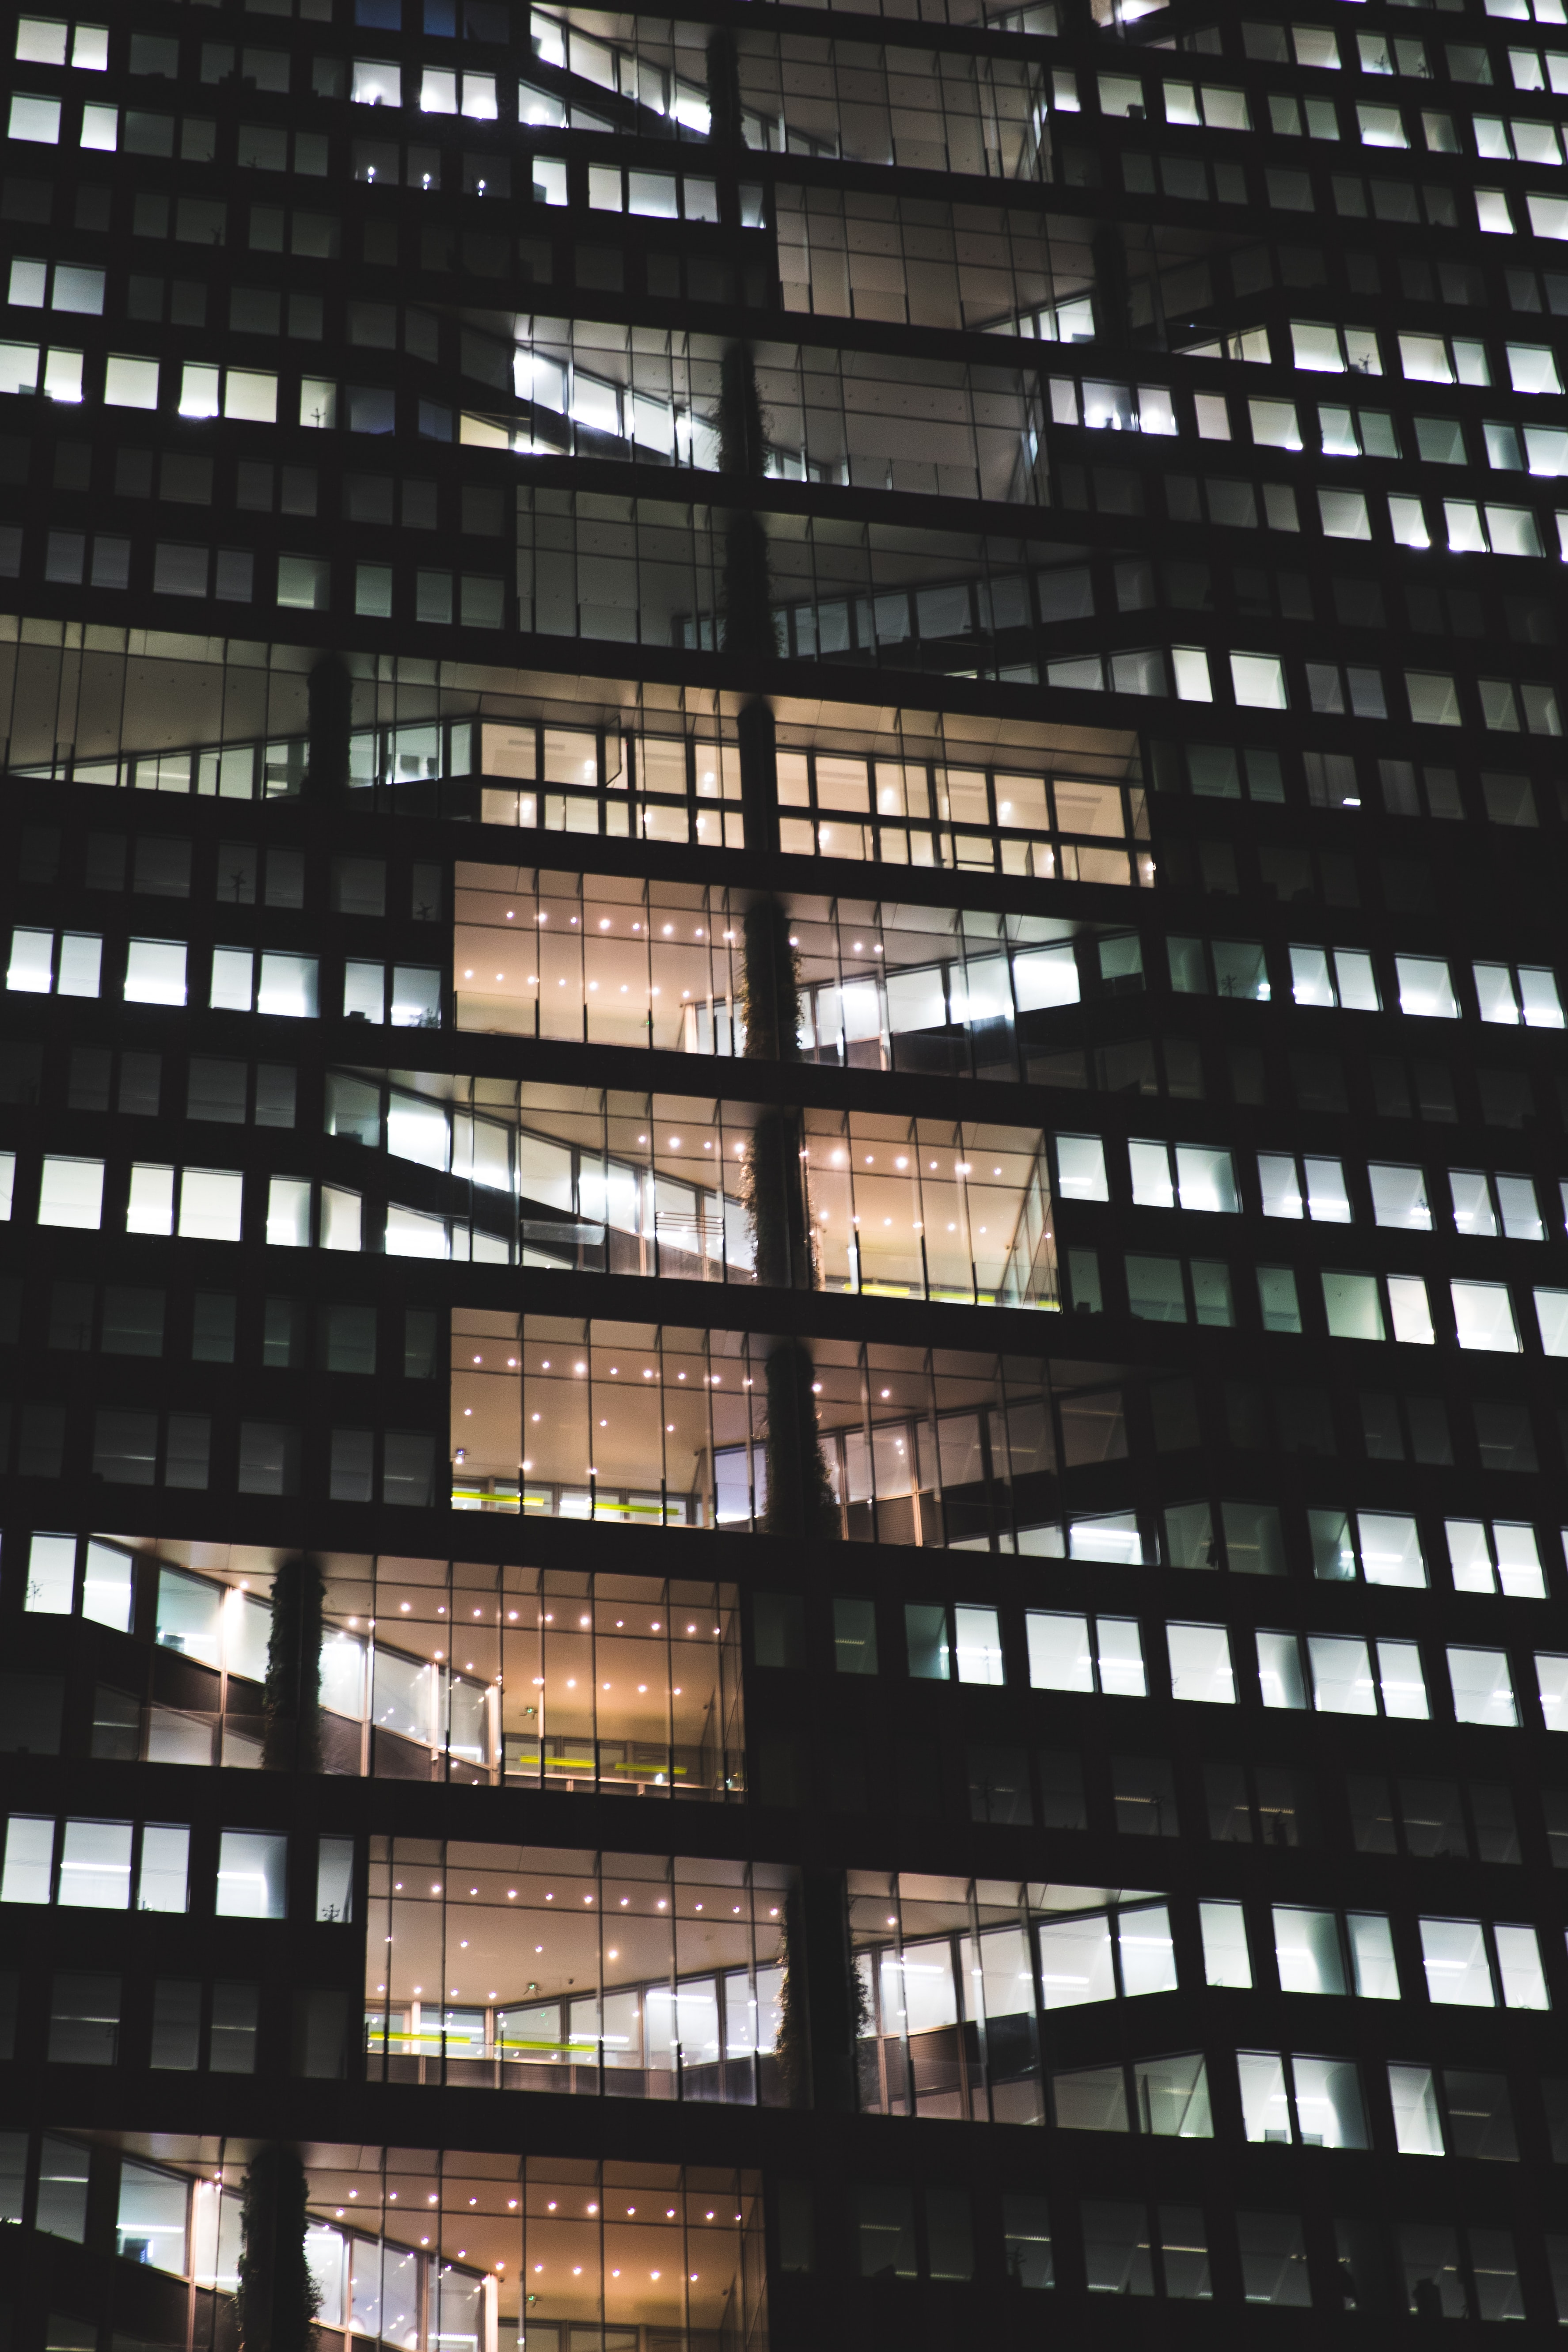 clear glass window building during night time